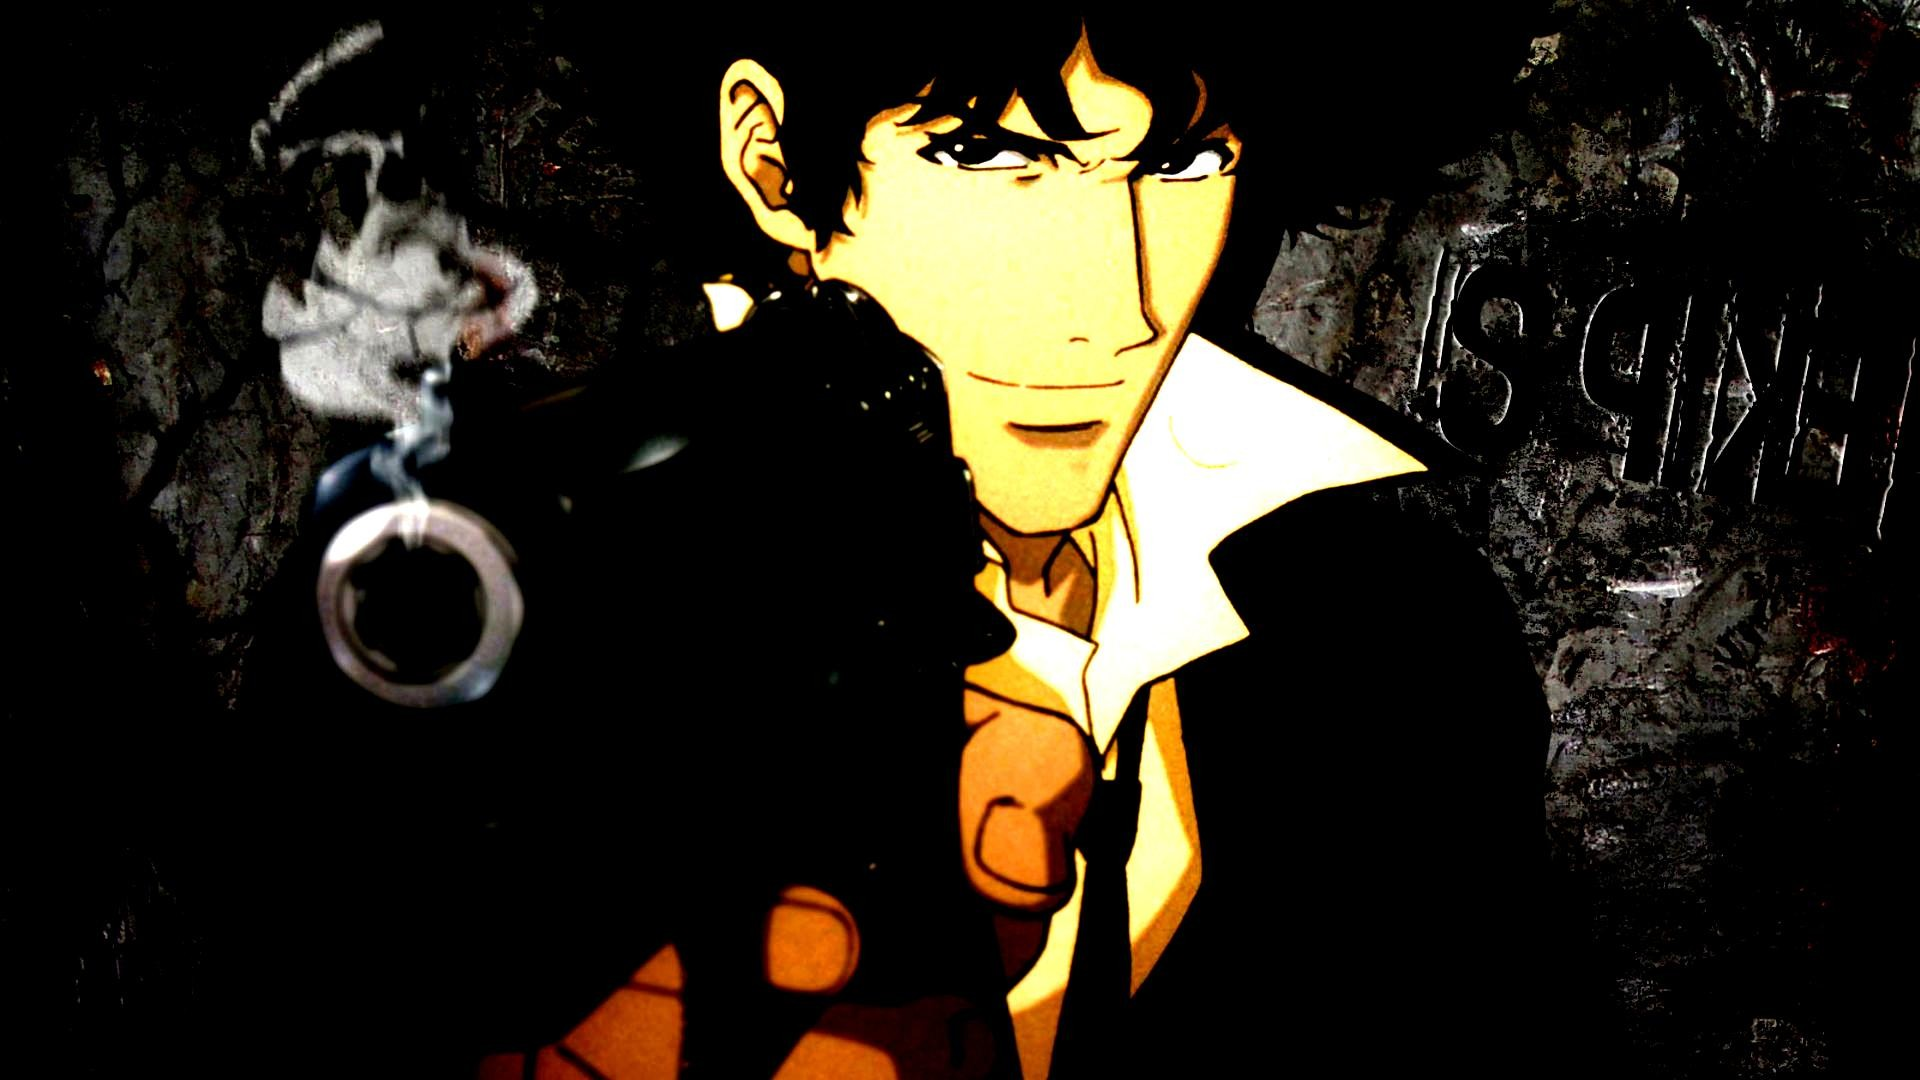 1920x1080 Spike spiegel anime guy hot black hair stud hogh contrast hd-wallpaper -1883917.jpg